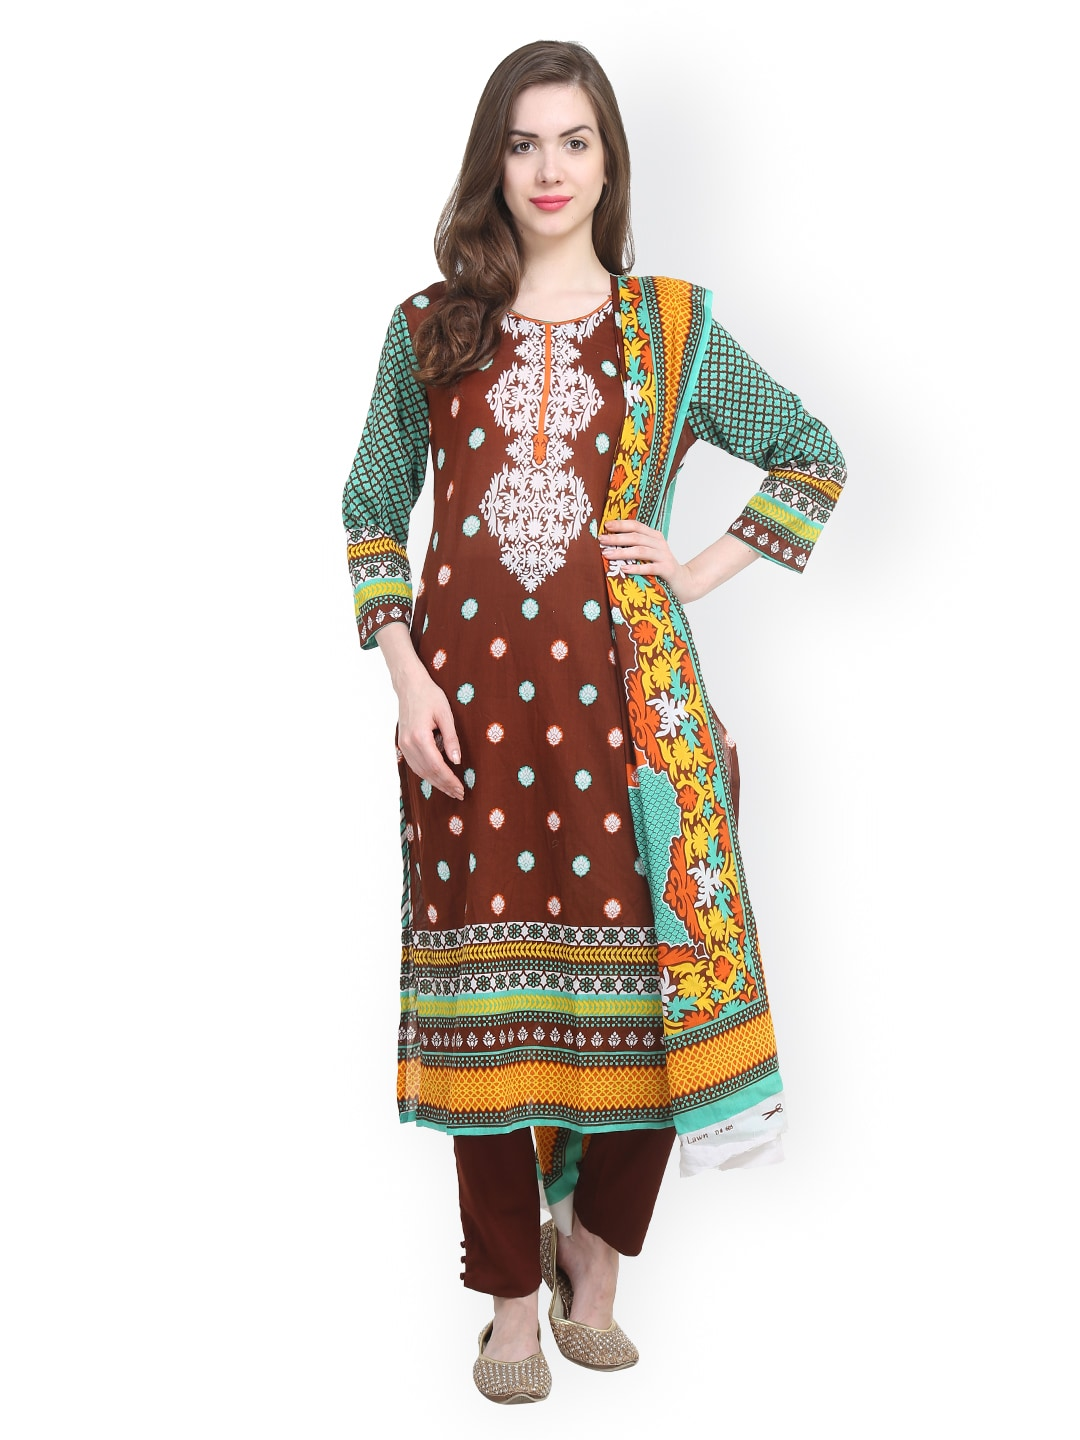 Uptown Galeria Brown & Green Printed Pakistani Cotton Lawn Unstitched Dress Material